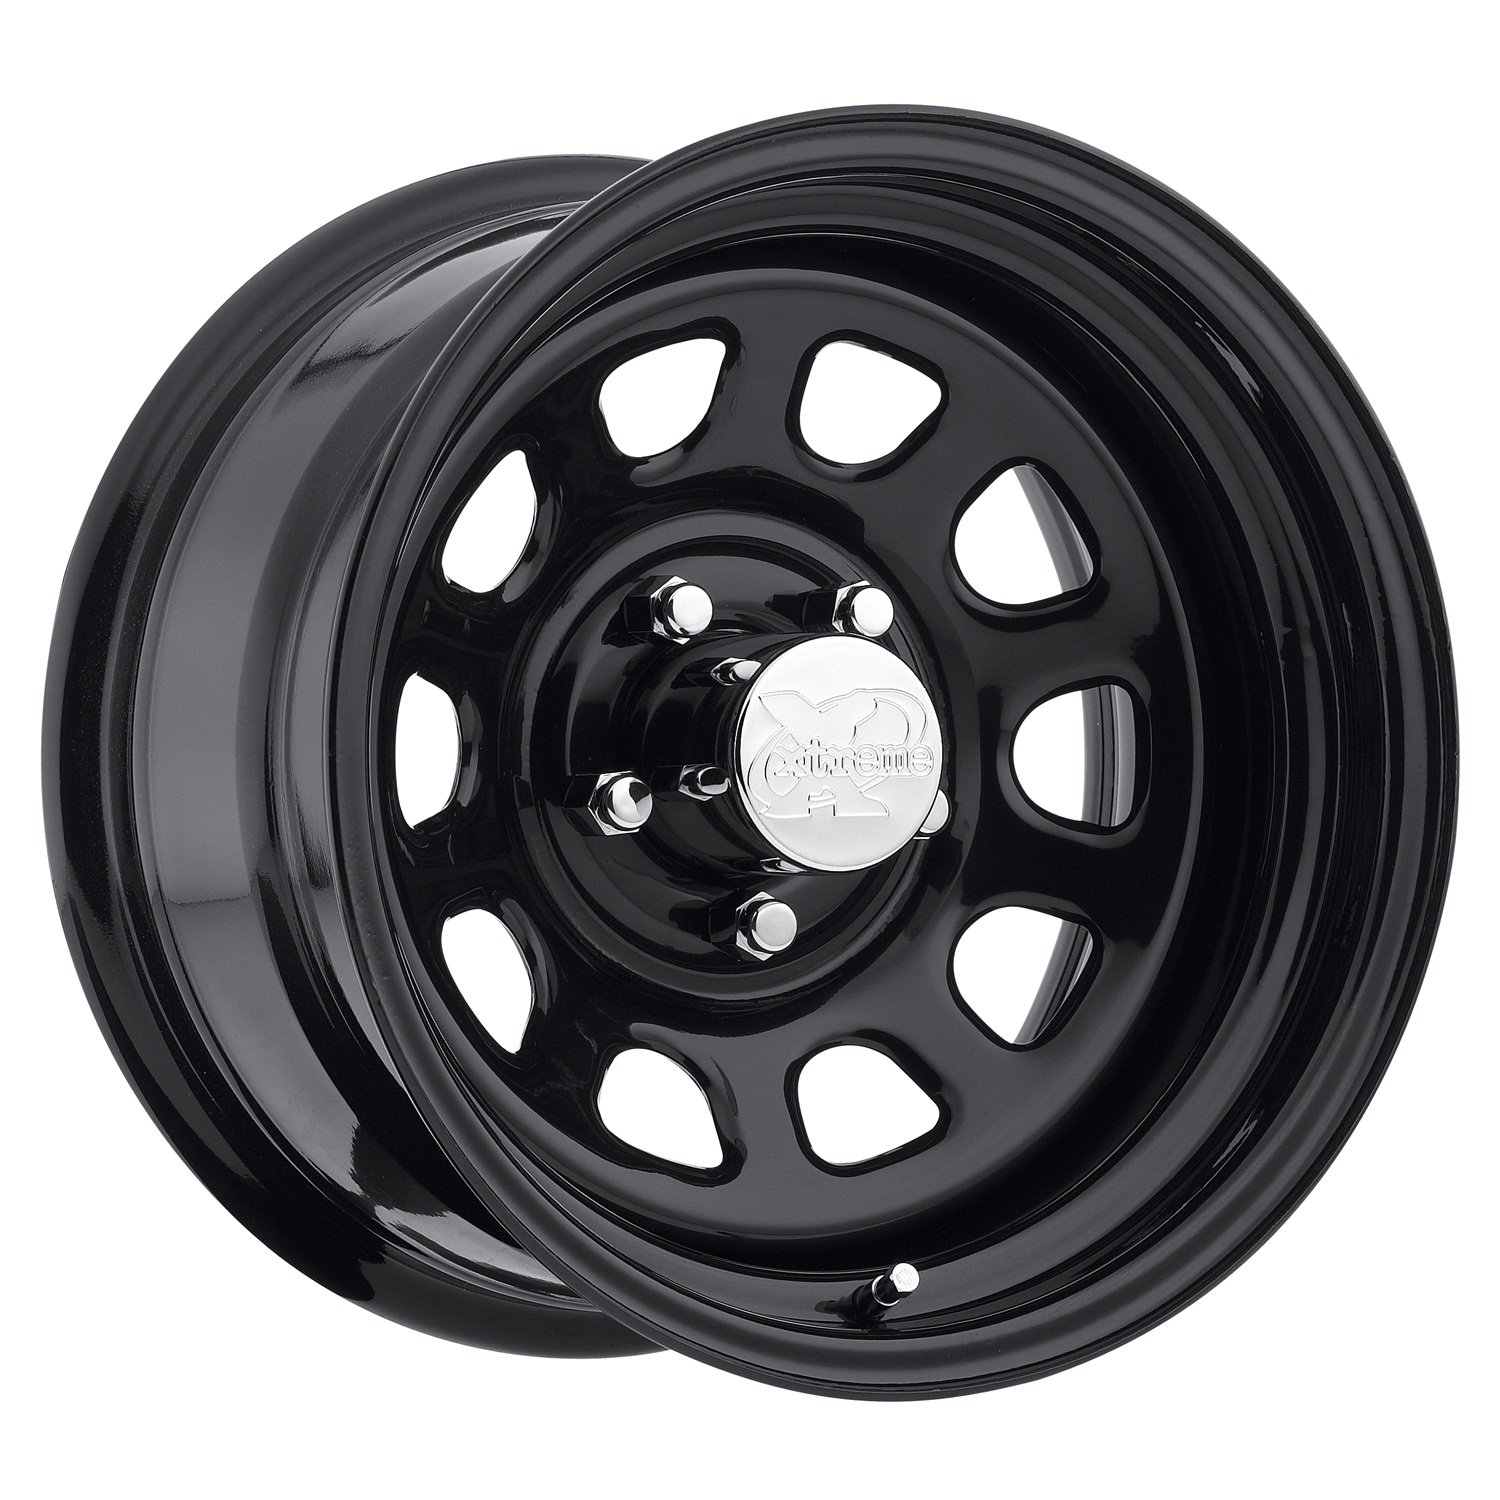 Amazon Pro p Steel Wheels Series 51 Wheel with Gloss Black